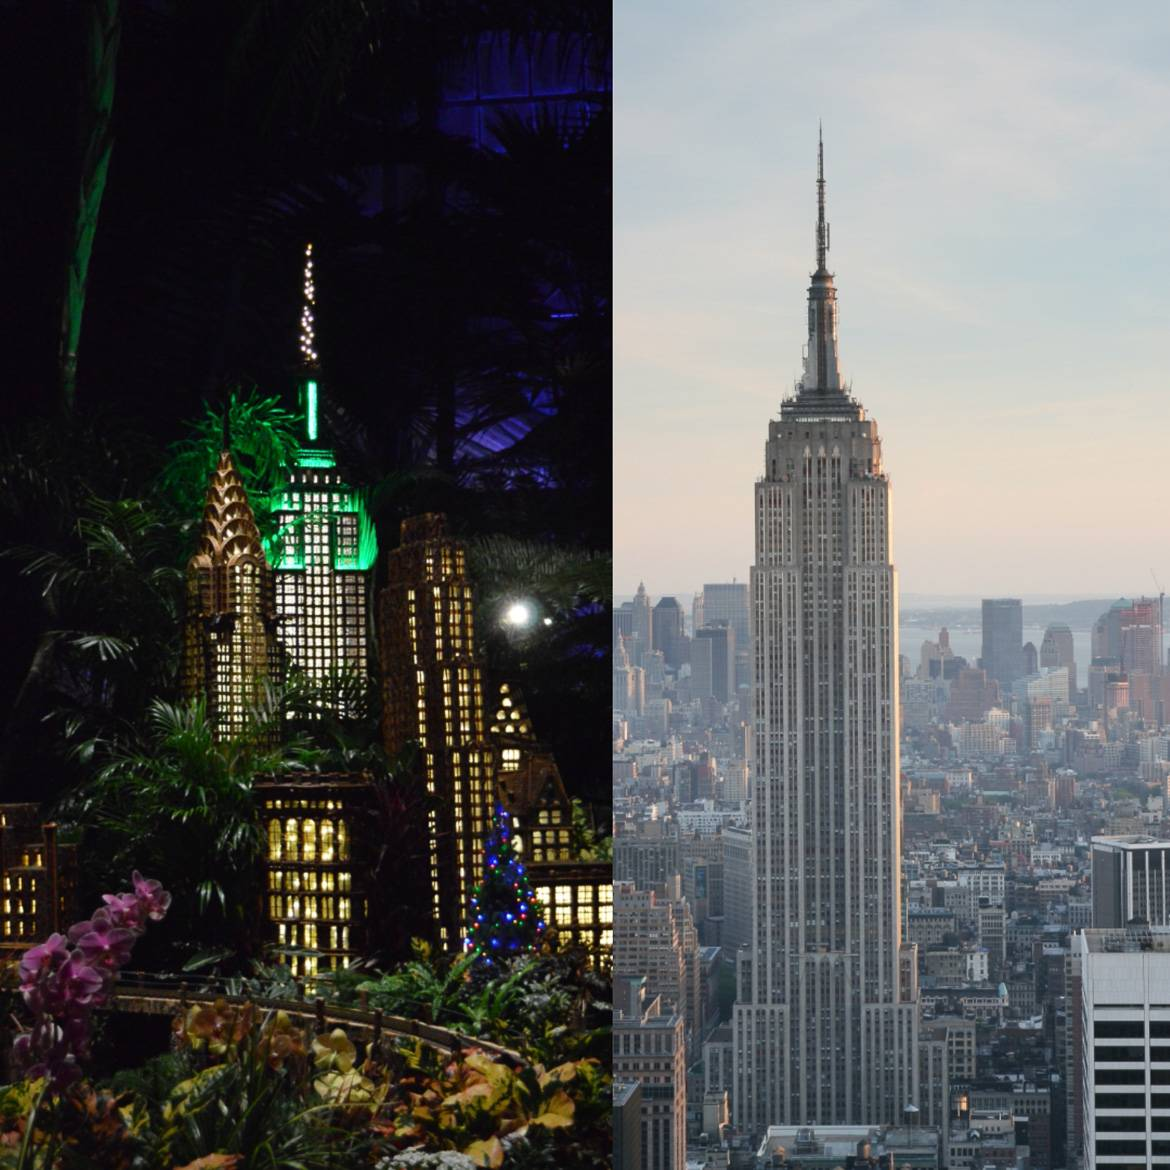 Image of a replica of the Empire State Building with Chrysler Building and other apartment buildings  and image of Empire State Building towering over the Manhattan skyline